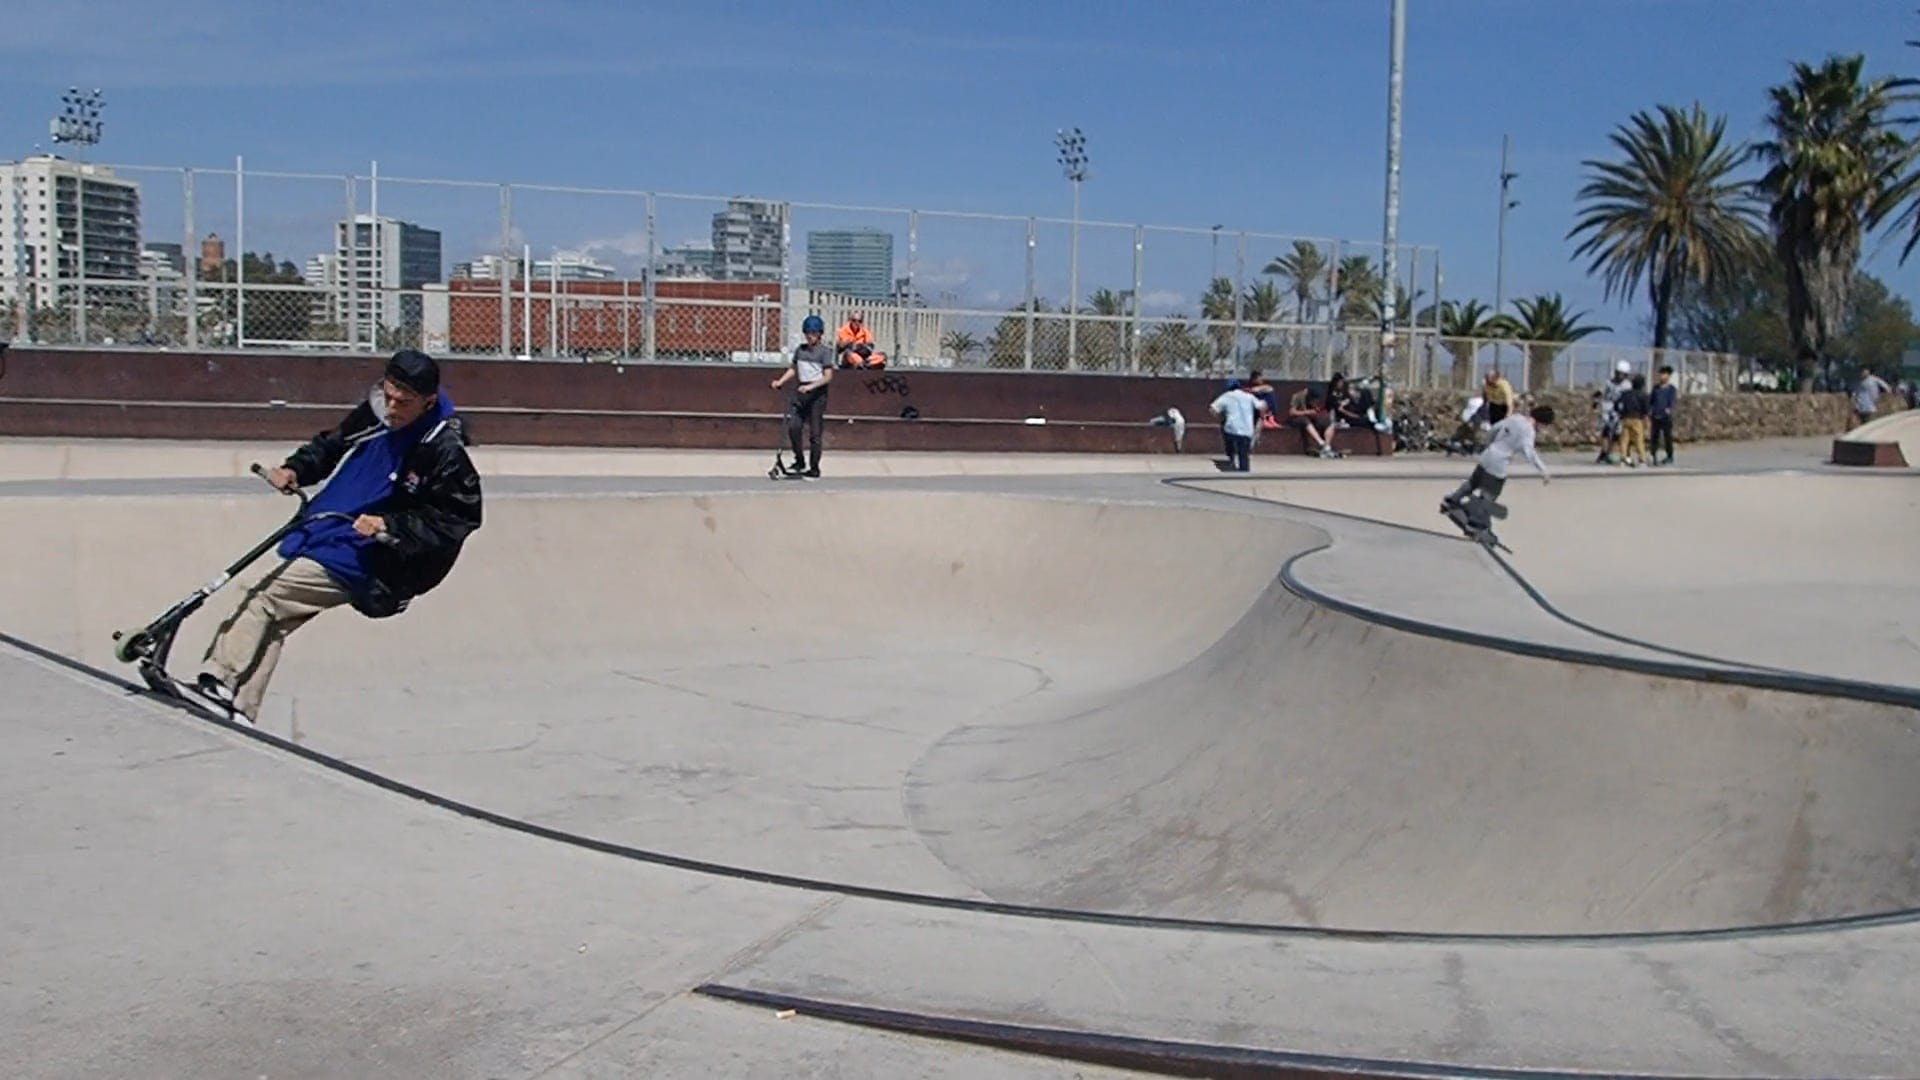 People At The Skate Park